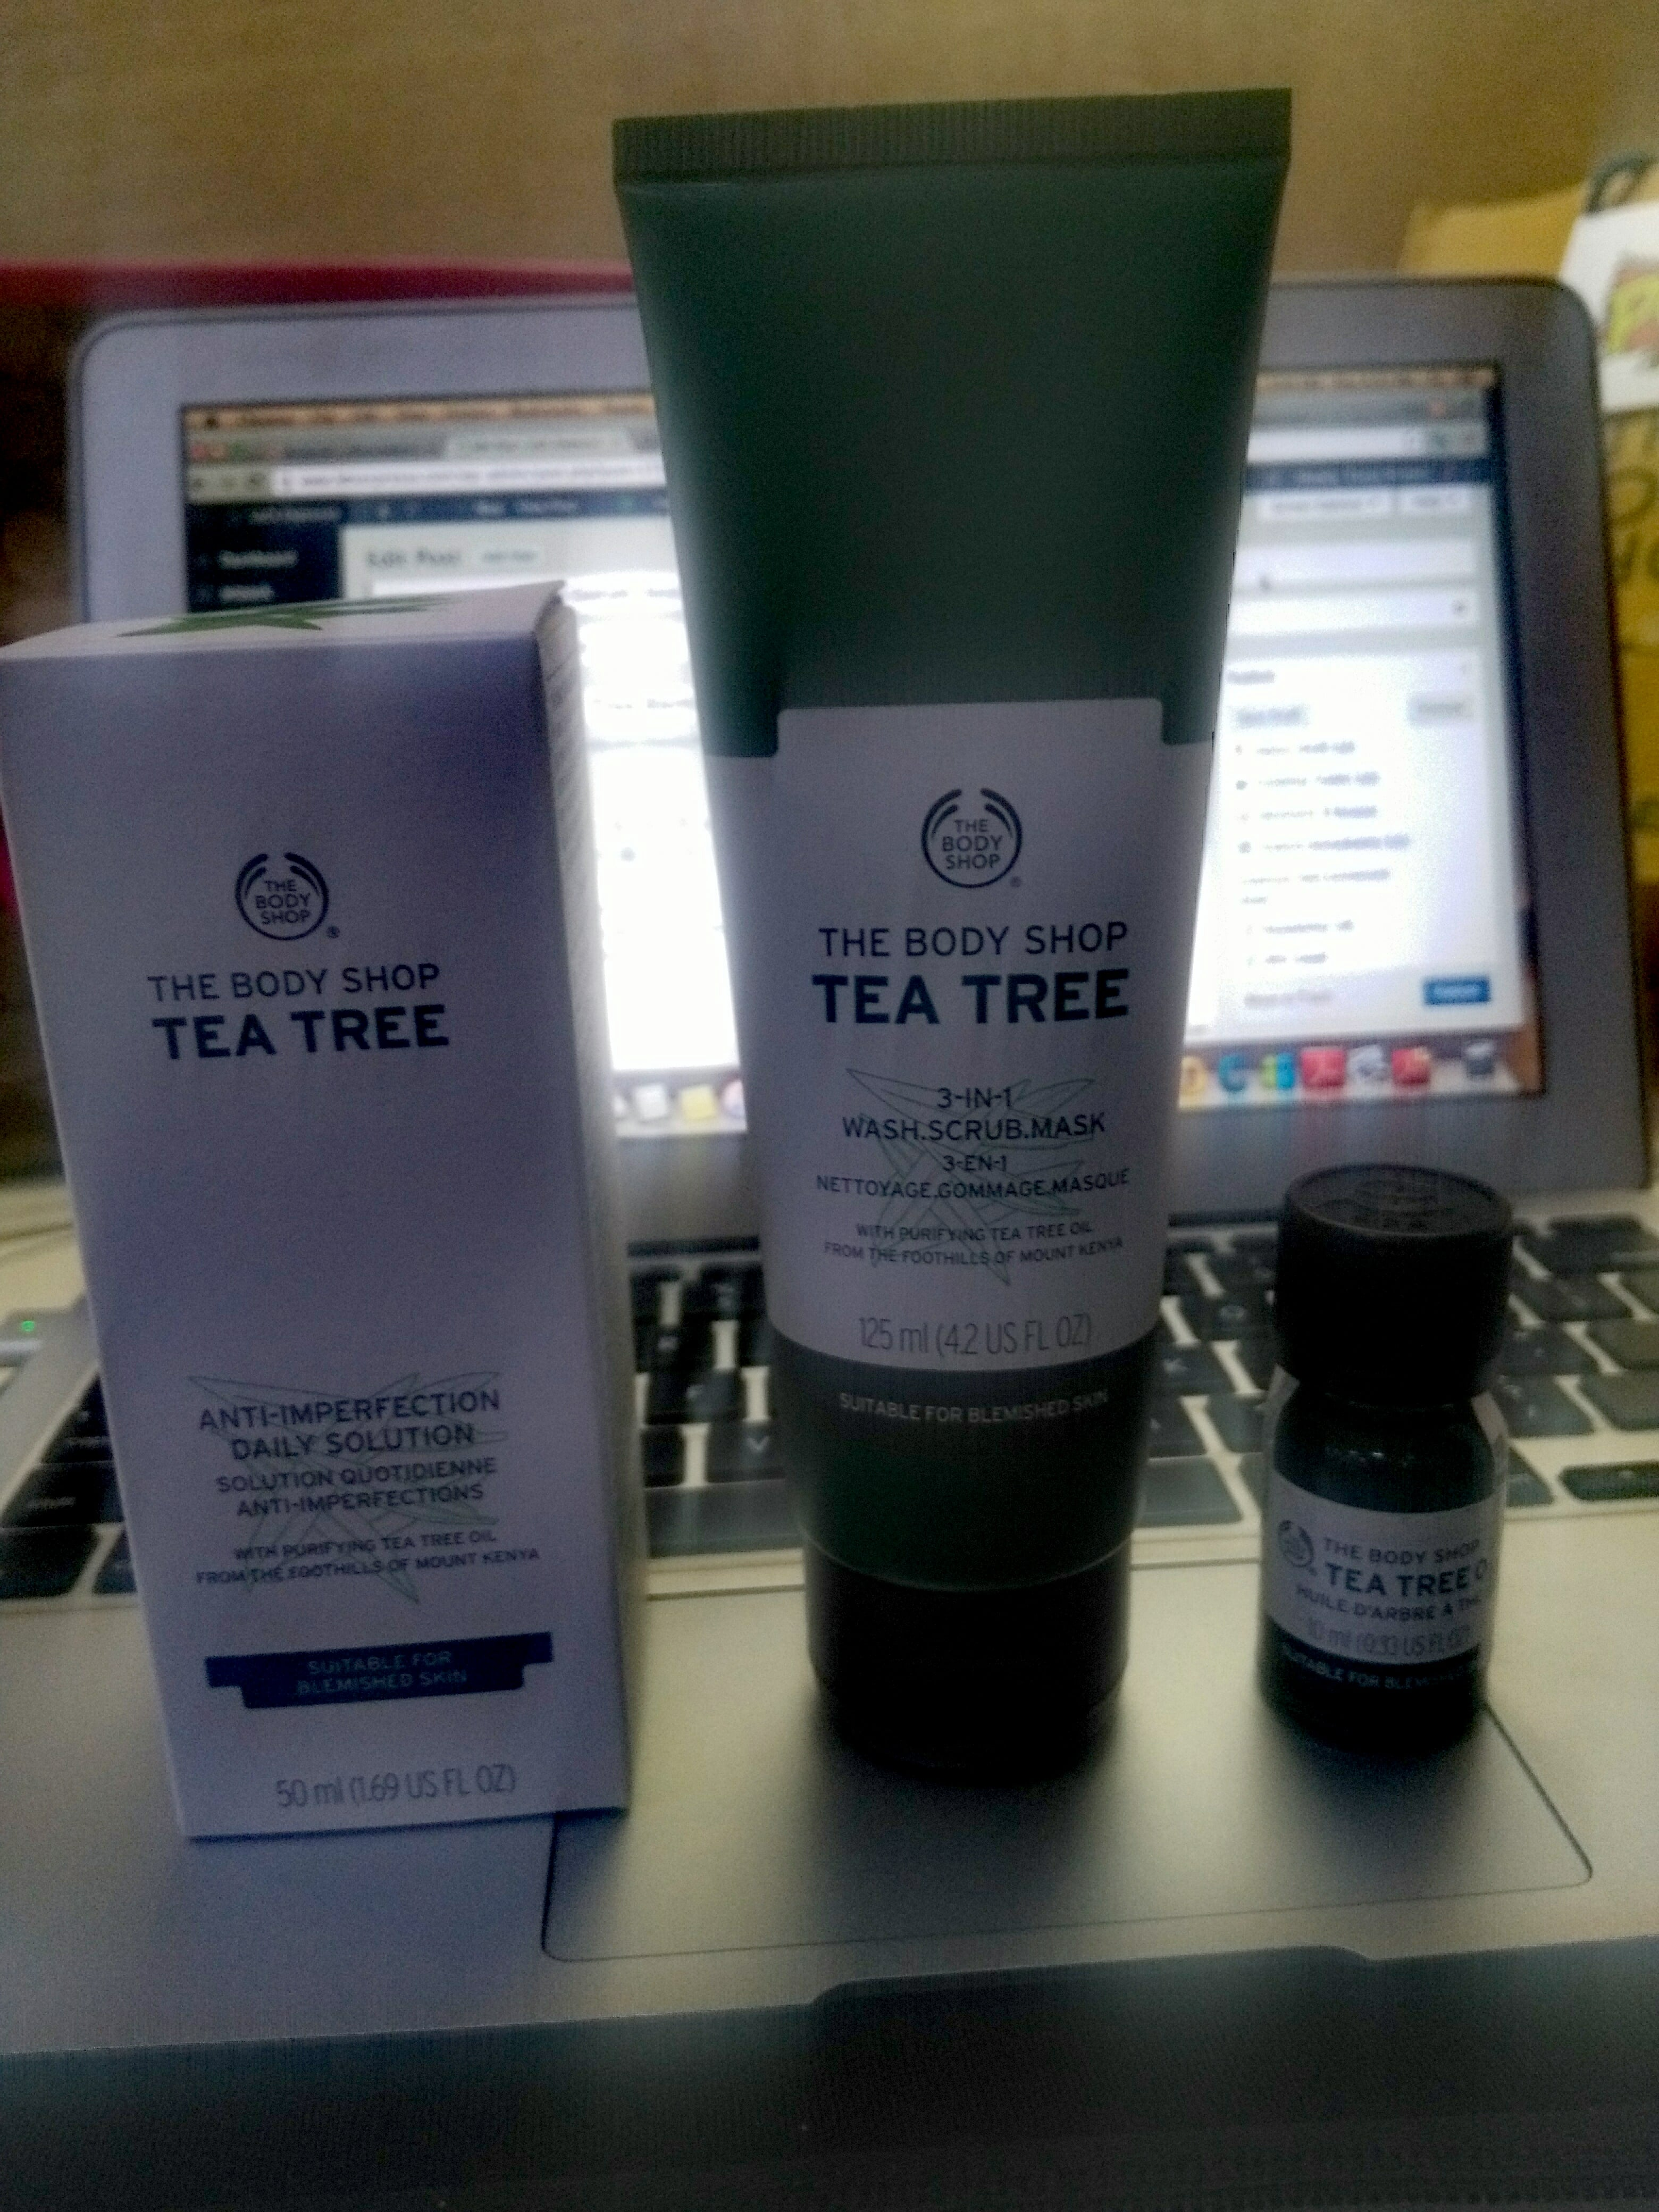 The Body Shop Tea Tree Blemish Battling Team review